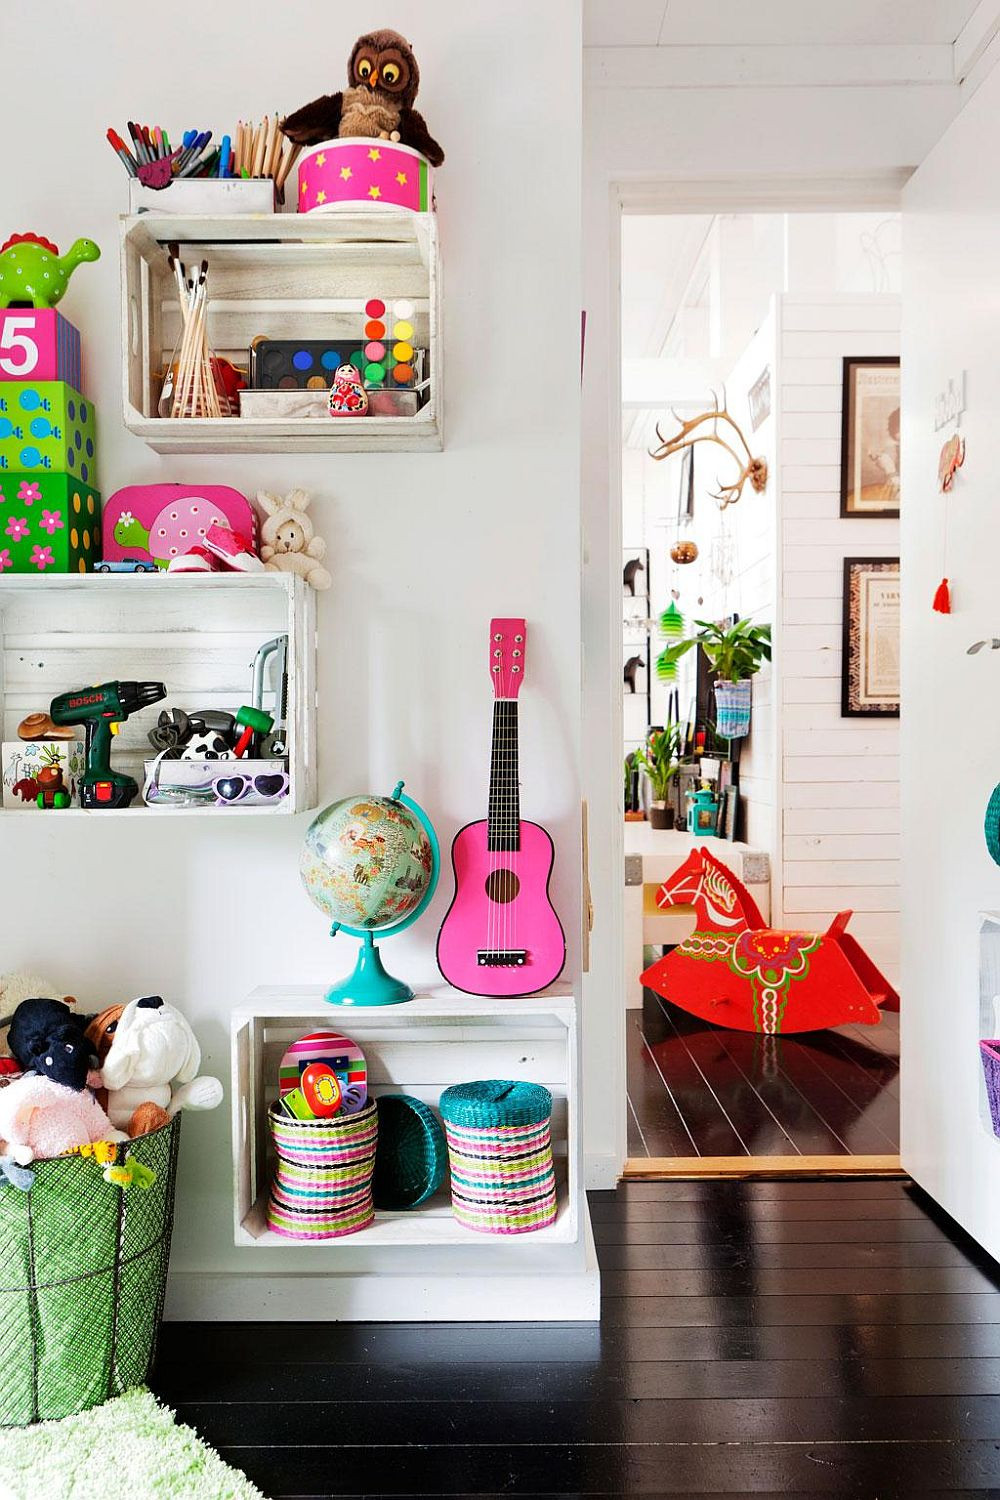 Best ideas about DIY Kids Rooms . Save or Pin 11 Space Saving DIY Kids' Room Storage Ideas that Help Now.